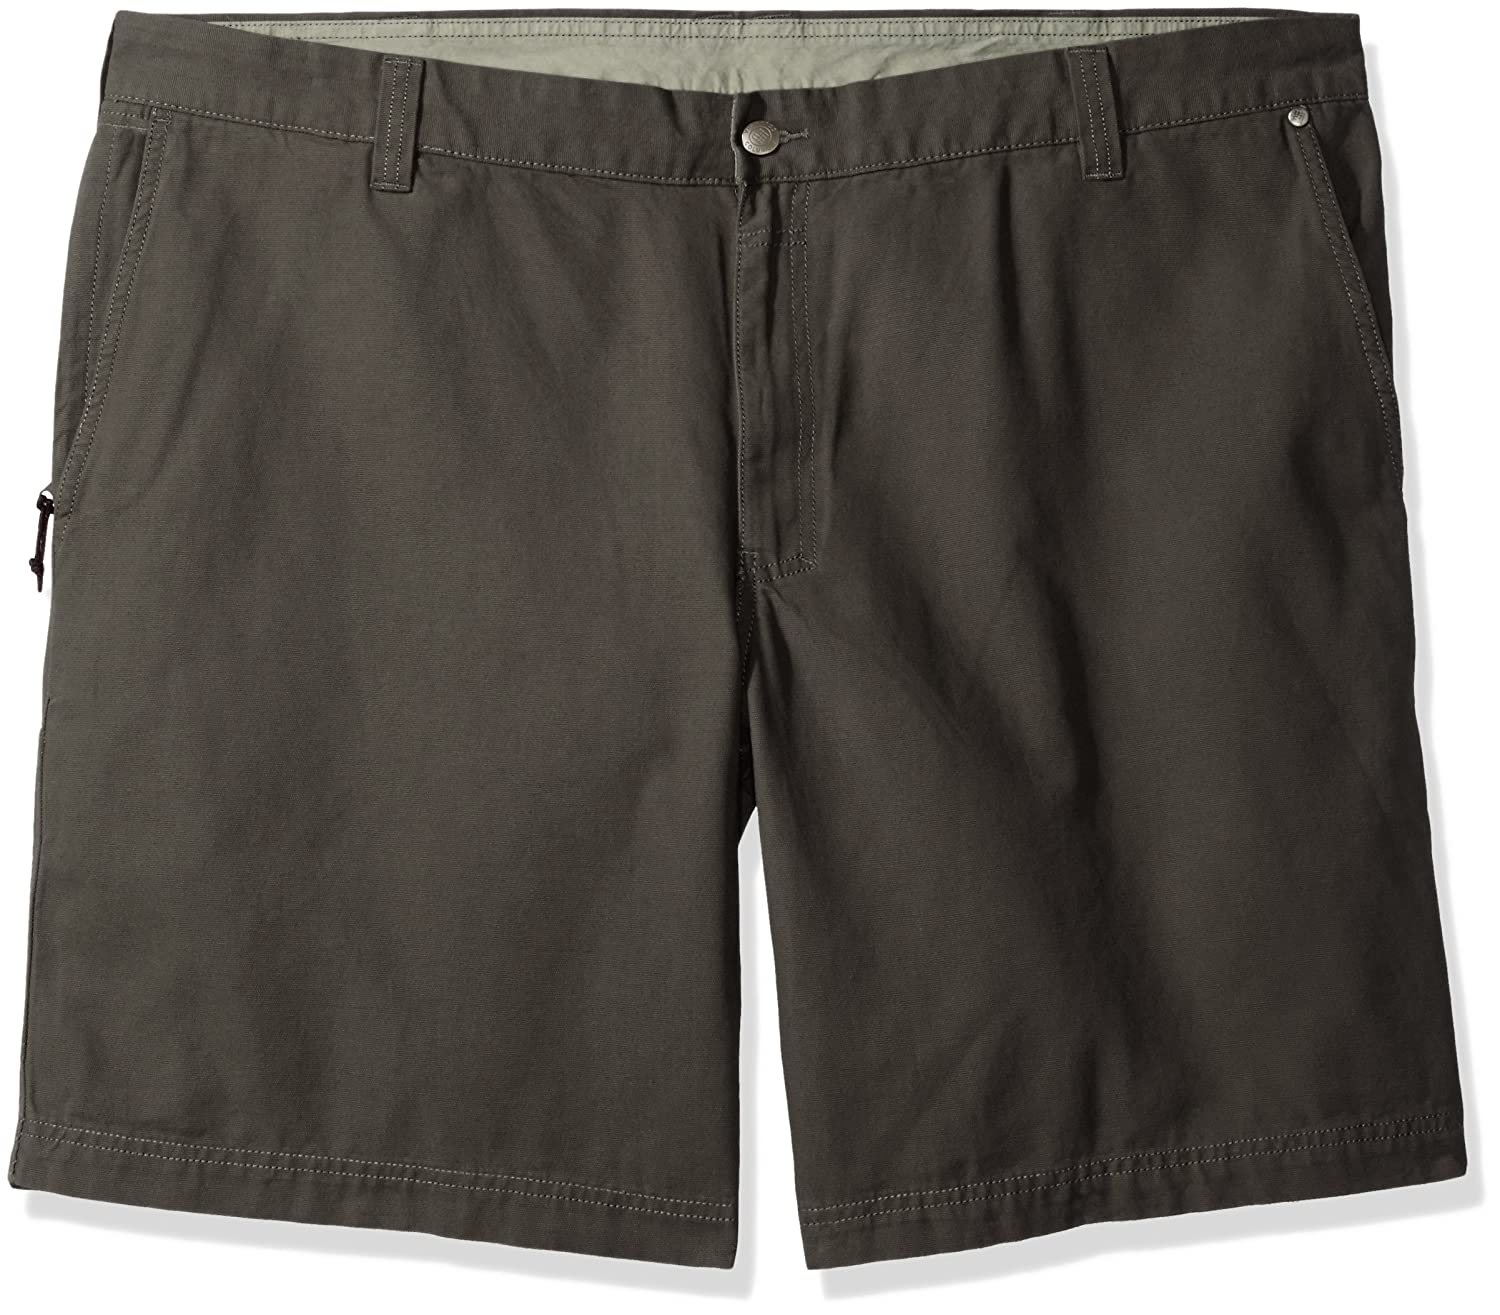 Columbia Men's Big & Tall ROC II Short Columbia Men's Sportswear 1438304